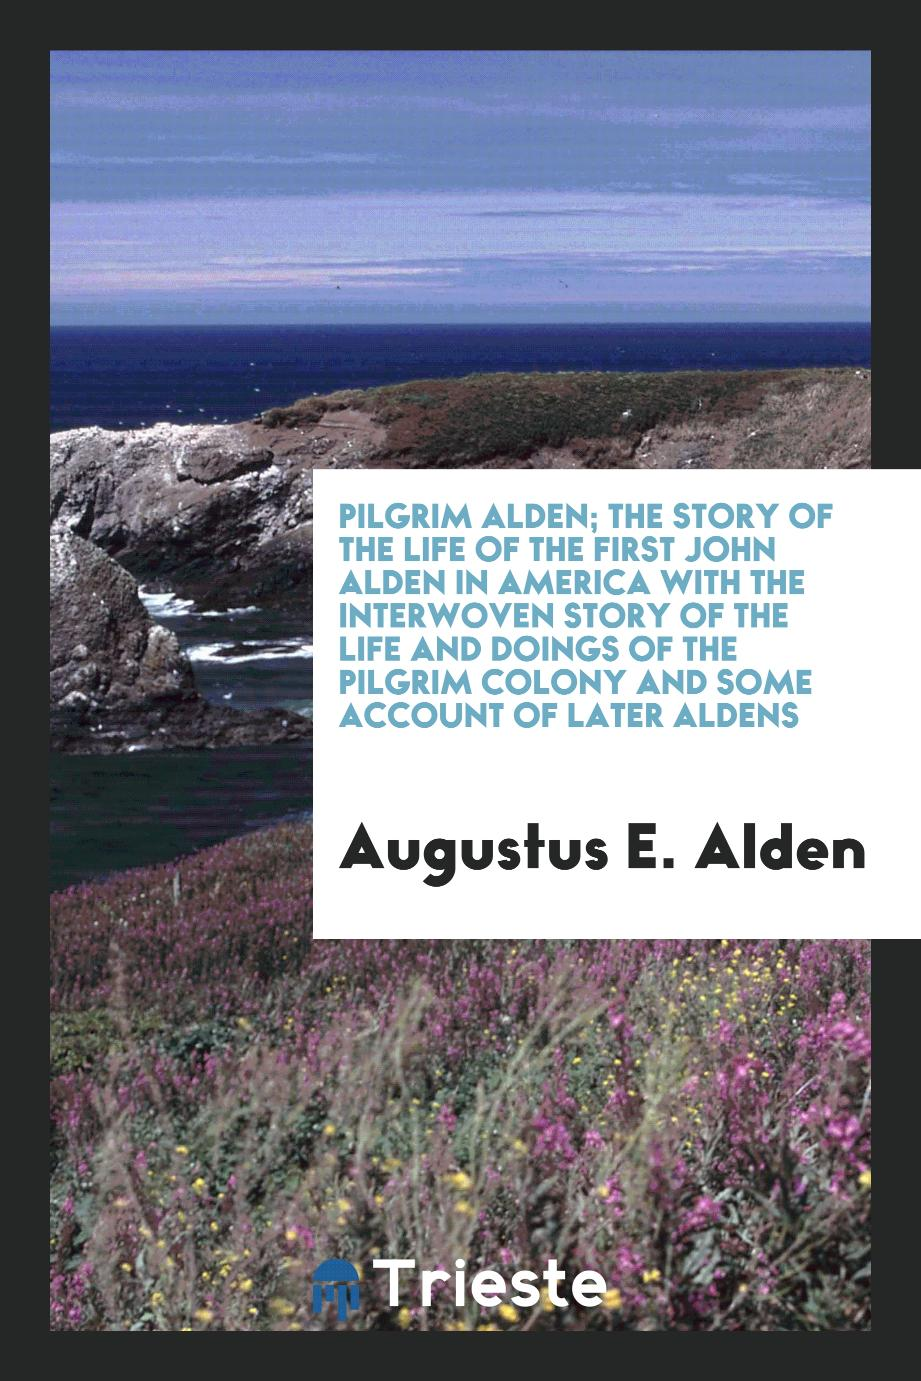 Pilgrim Alden; the story of the life of the first John Alden in America with the interwoven story of the life and doings of the Pilgrim colony and some account of later Aldens